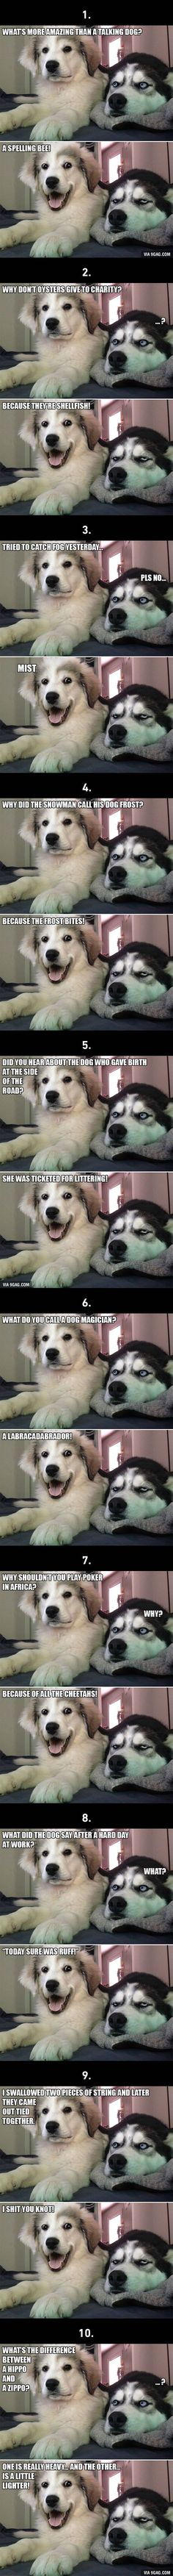 """Viral pictures of the day: 10 Best """"Bad Puns Dog"""" Memes Ever"""